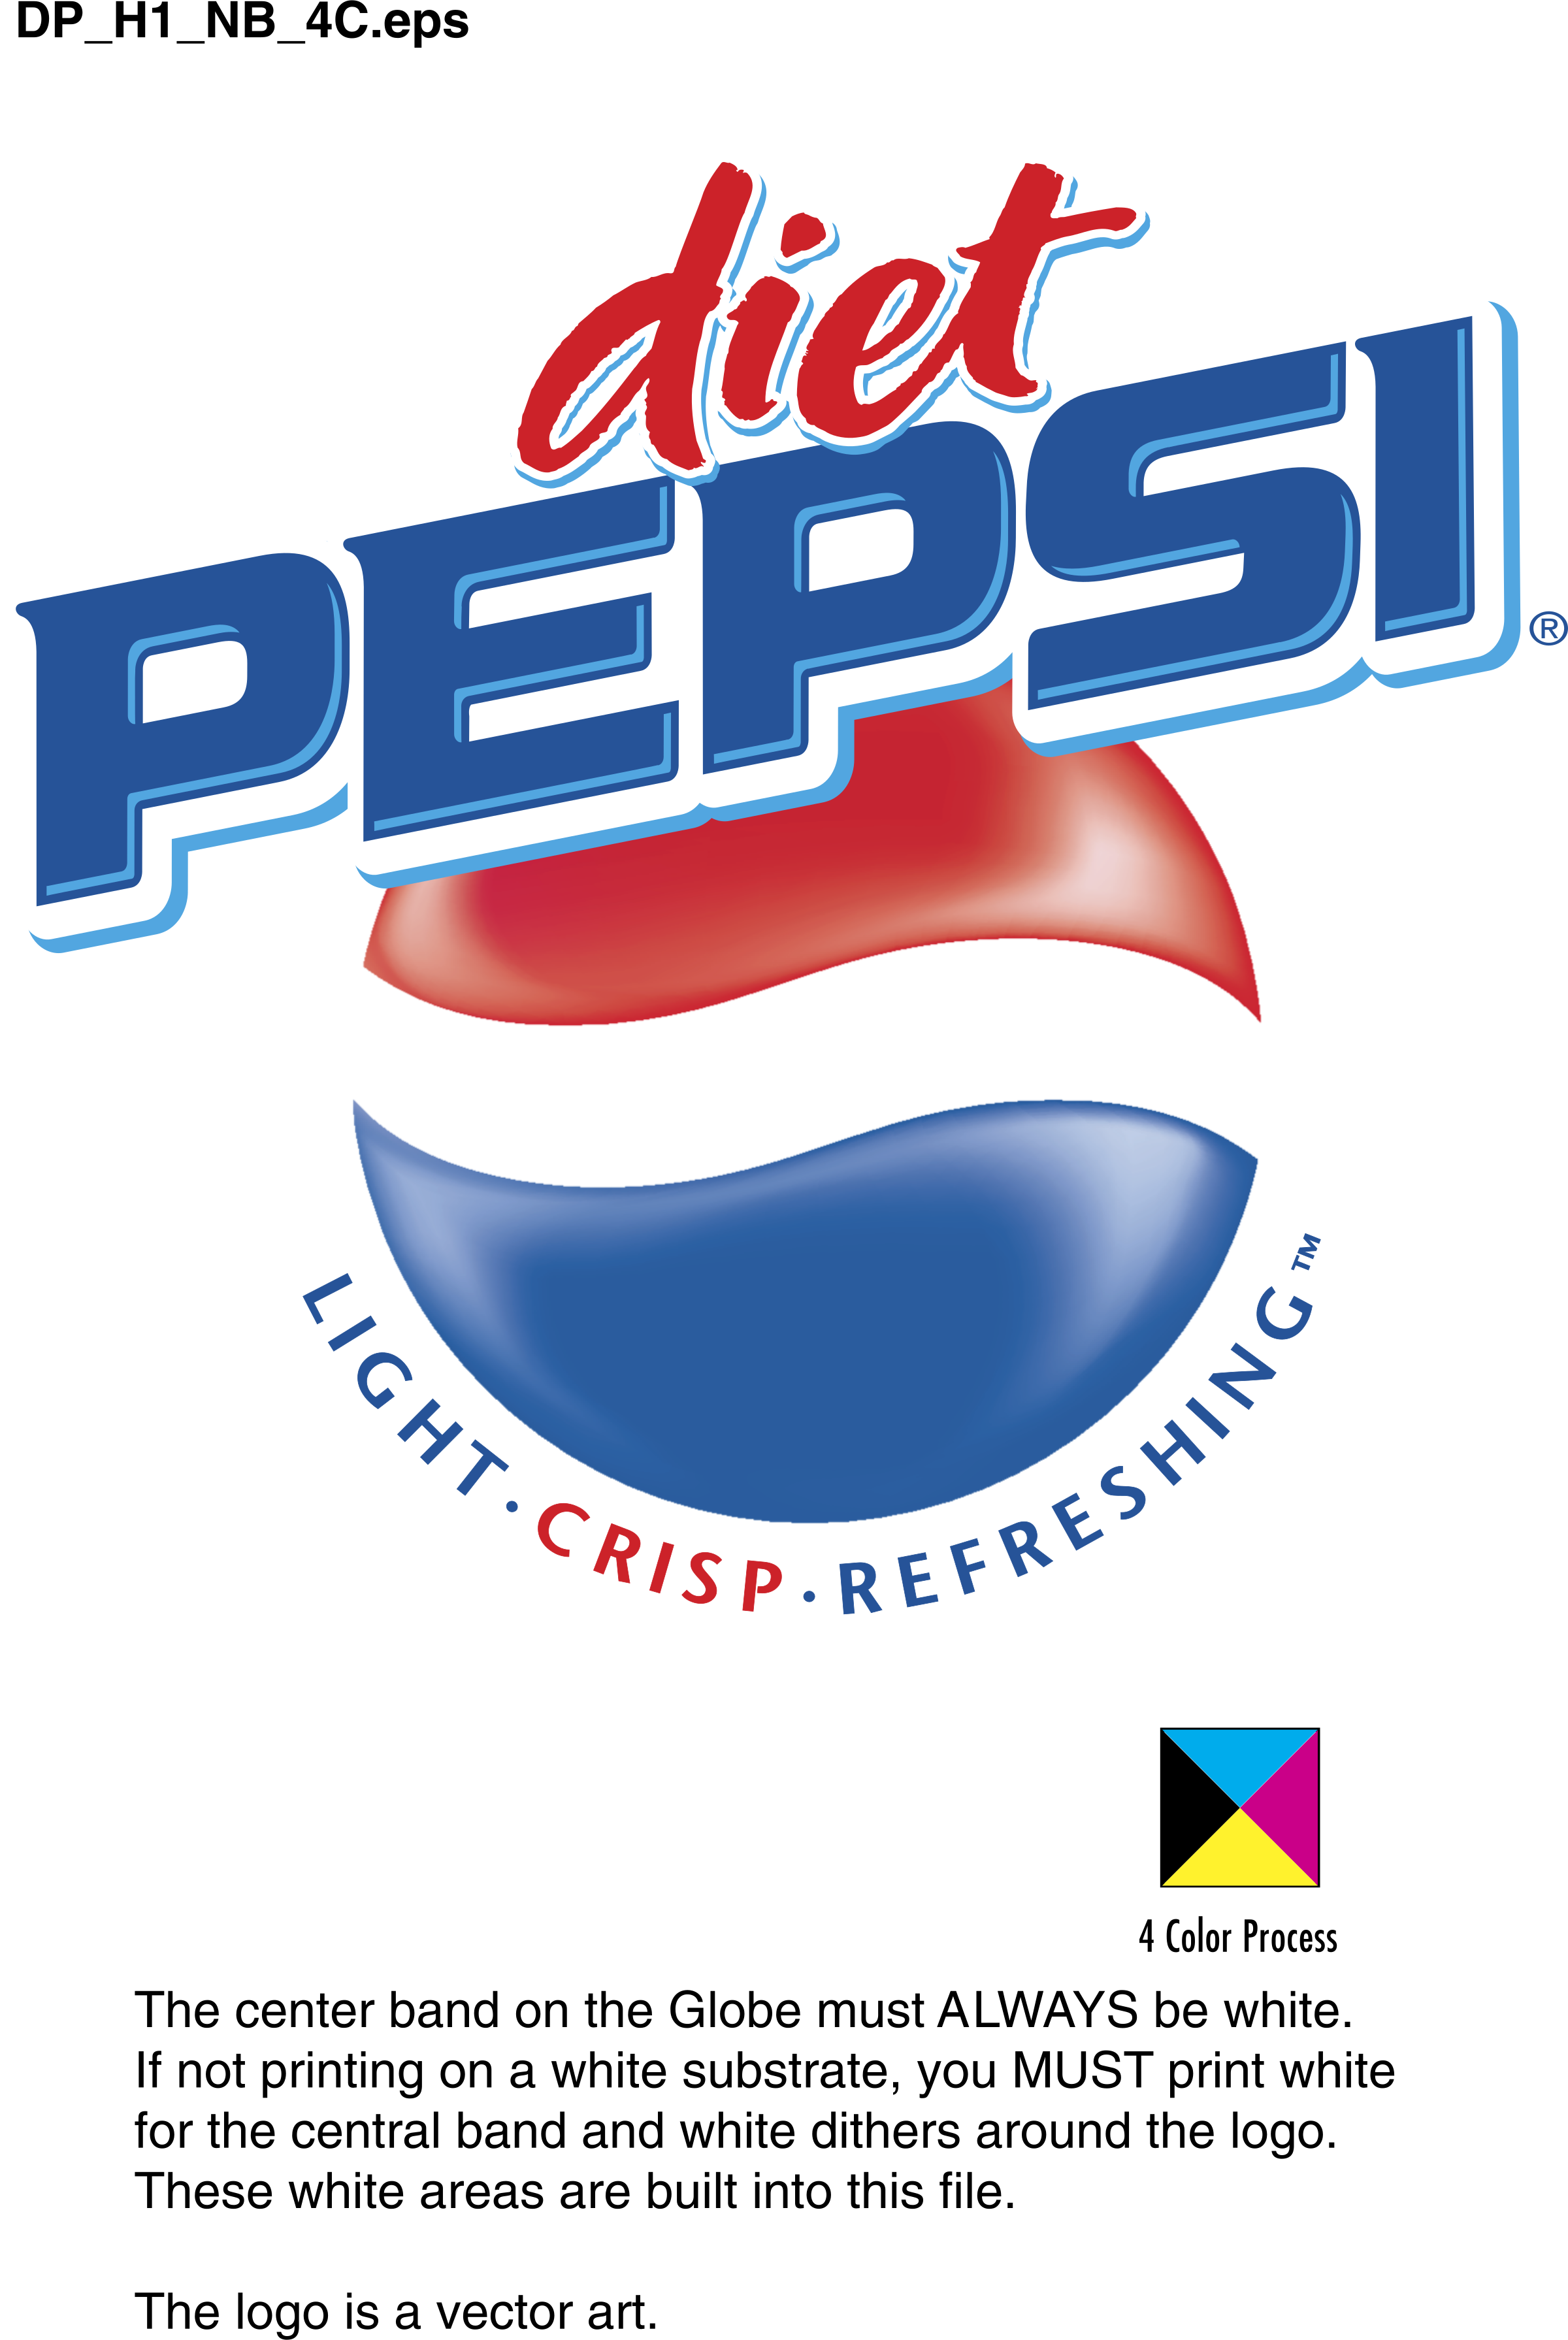 DIET PEPSI Logo PNG Transparent